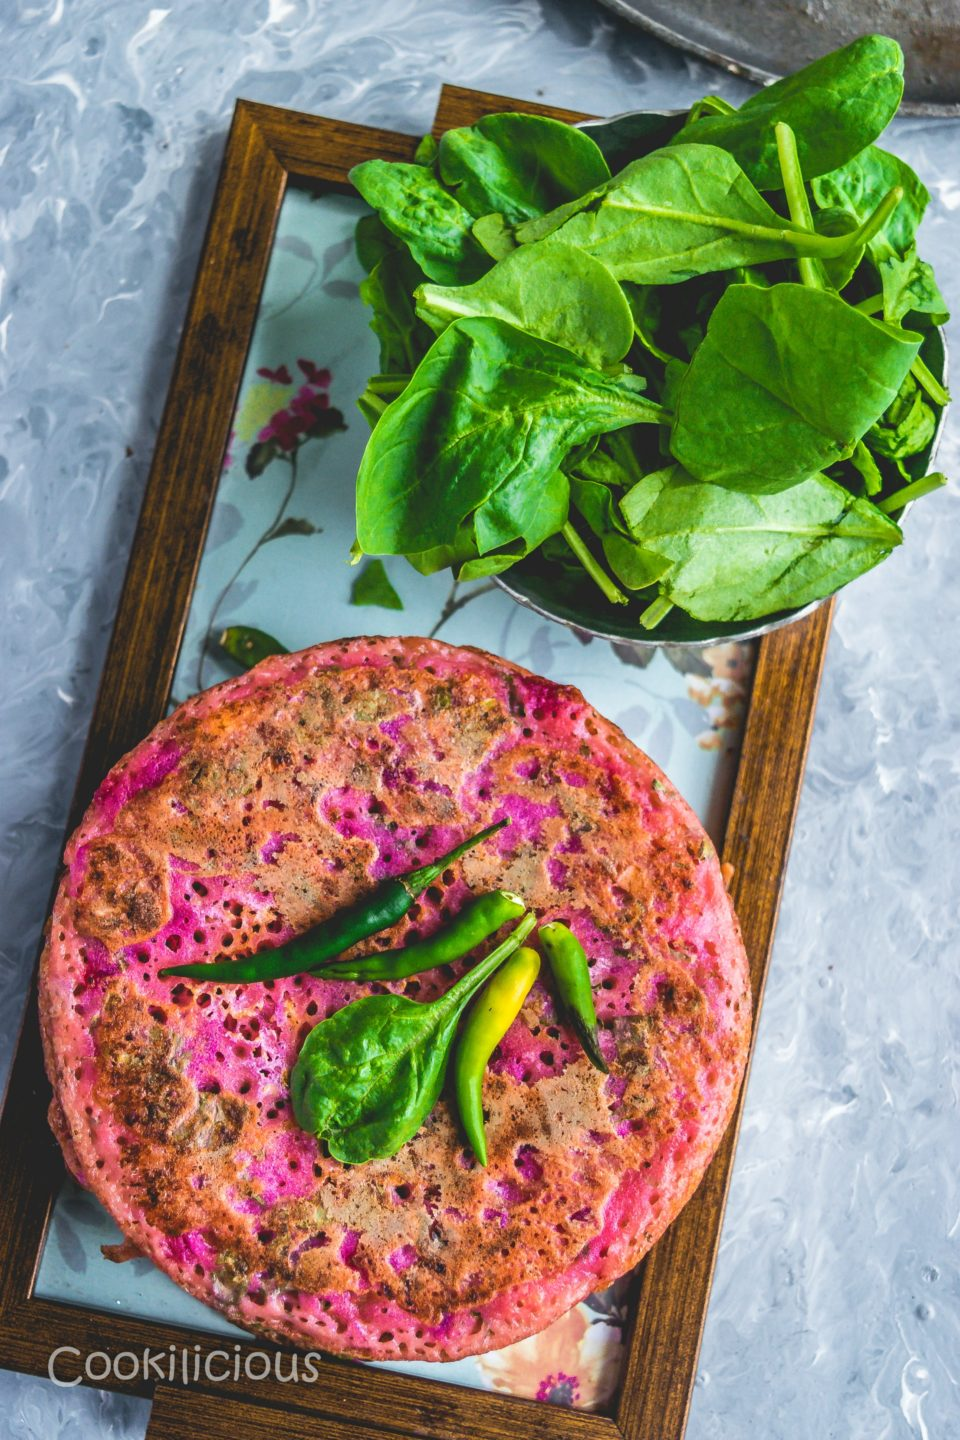 stacked up Pink Uttapam with Beets & Veggies and a bowl of spinach leaves on a tray